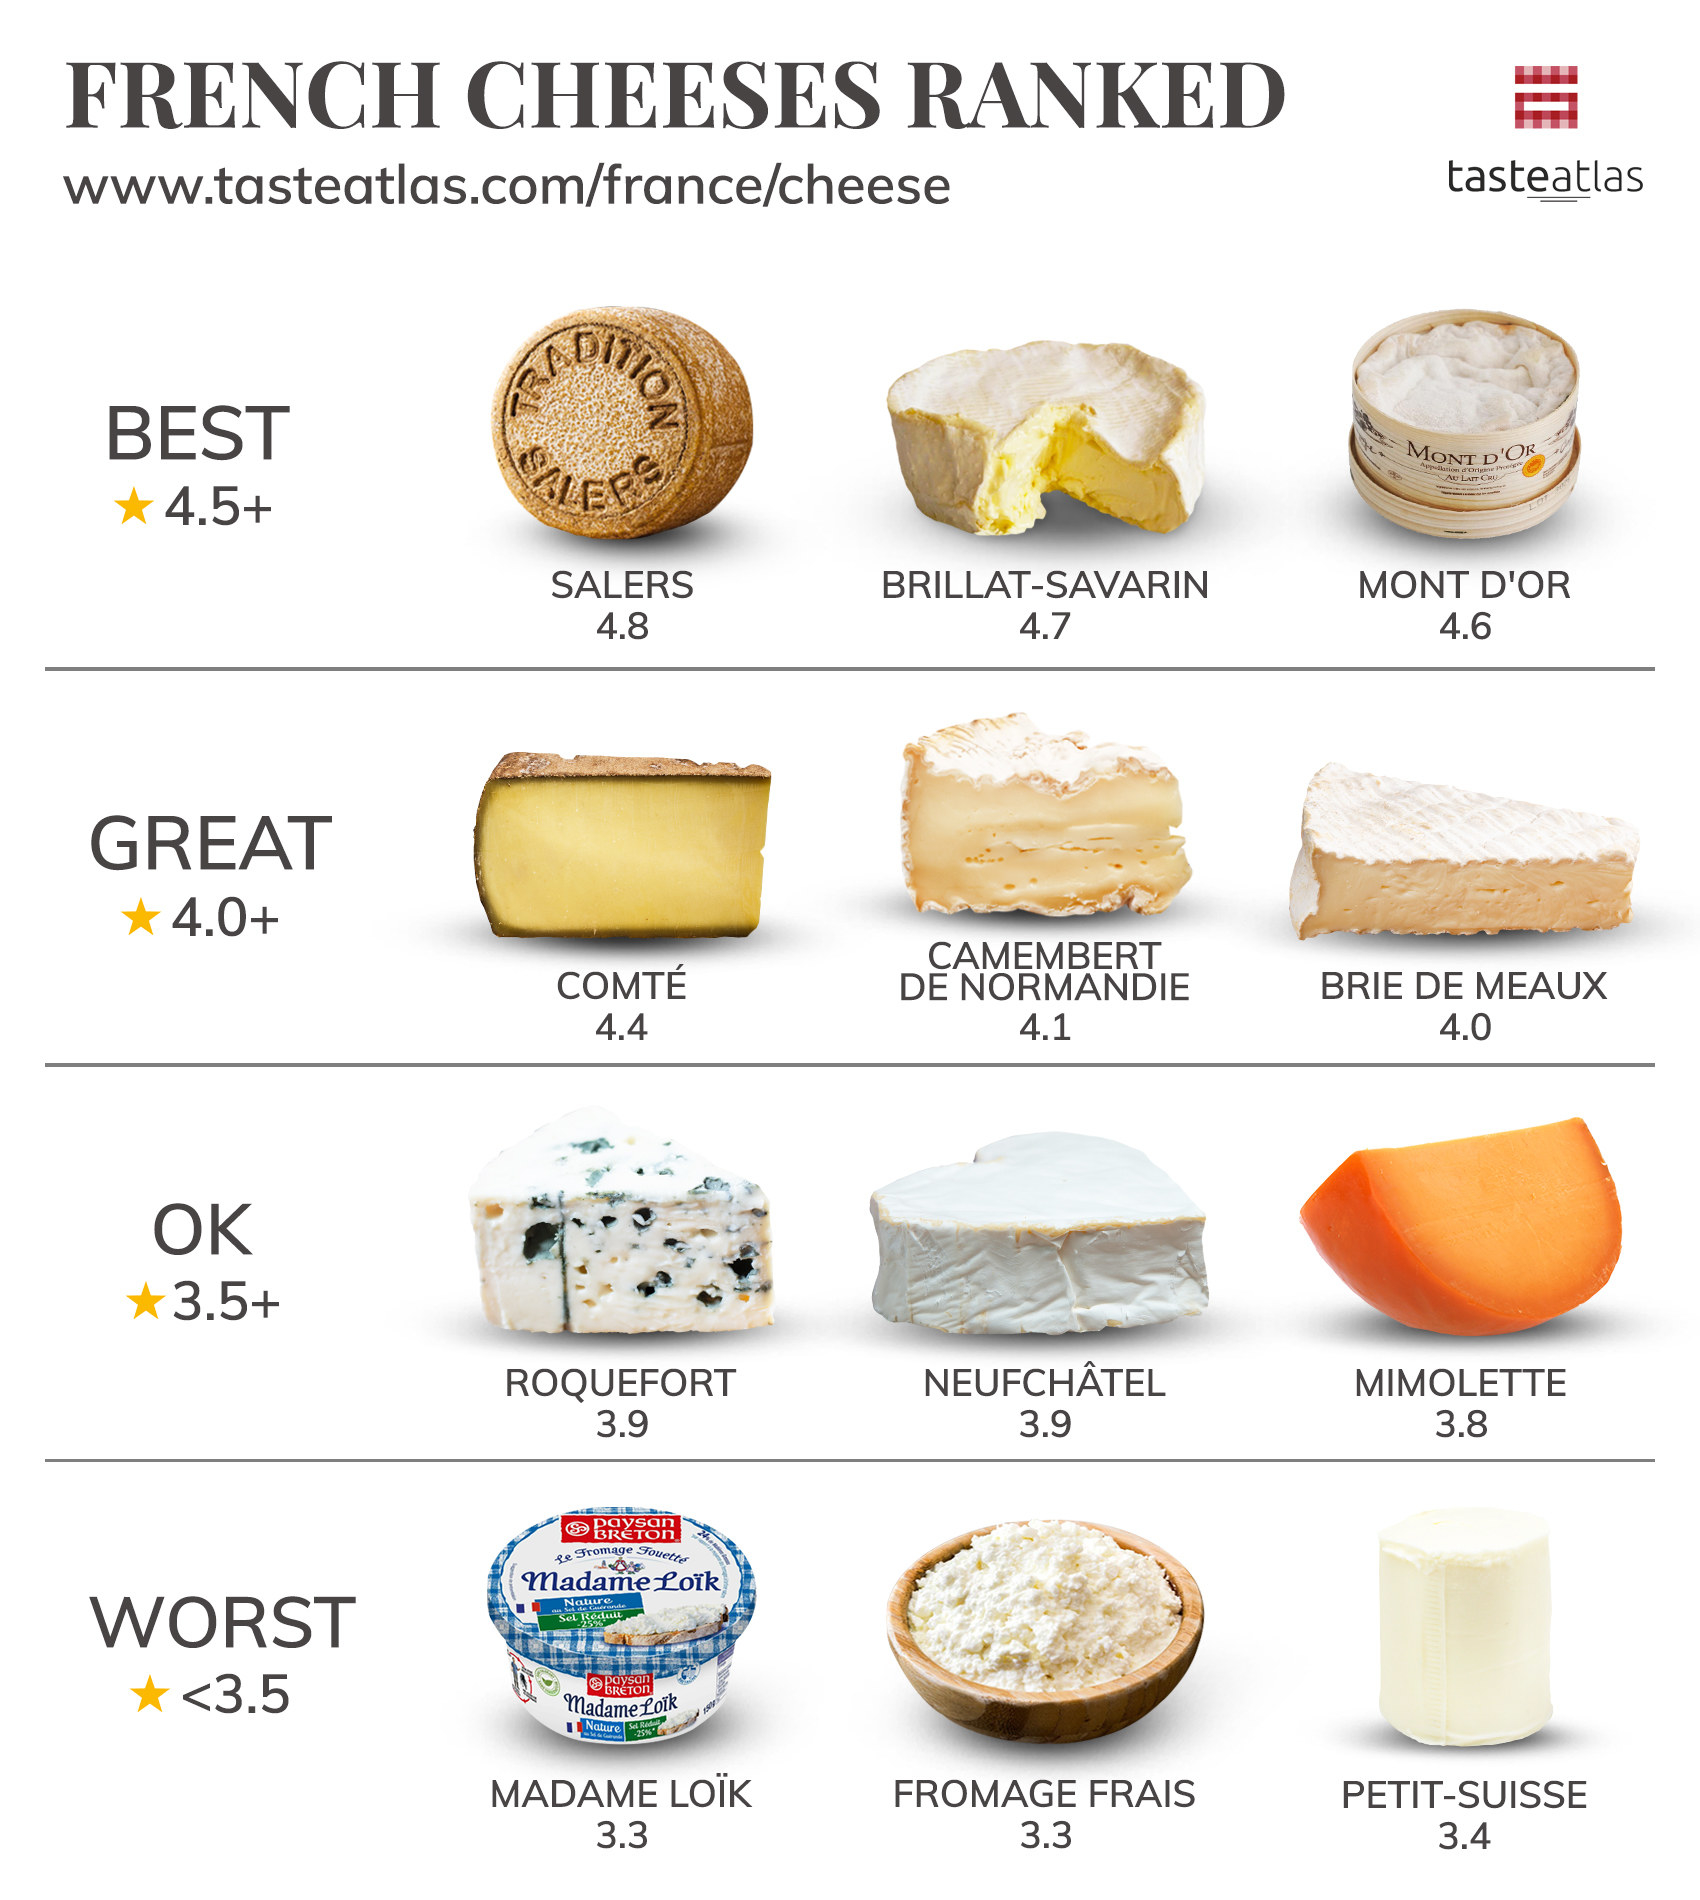 Graphic showing Salers cheese ranked best